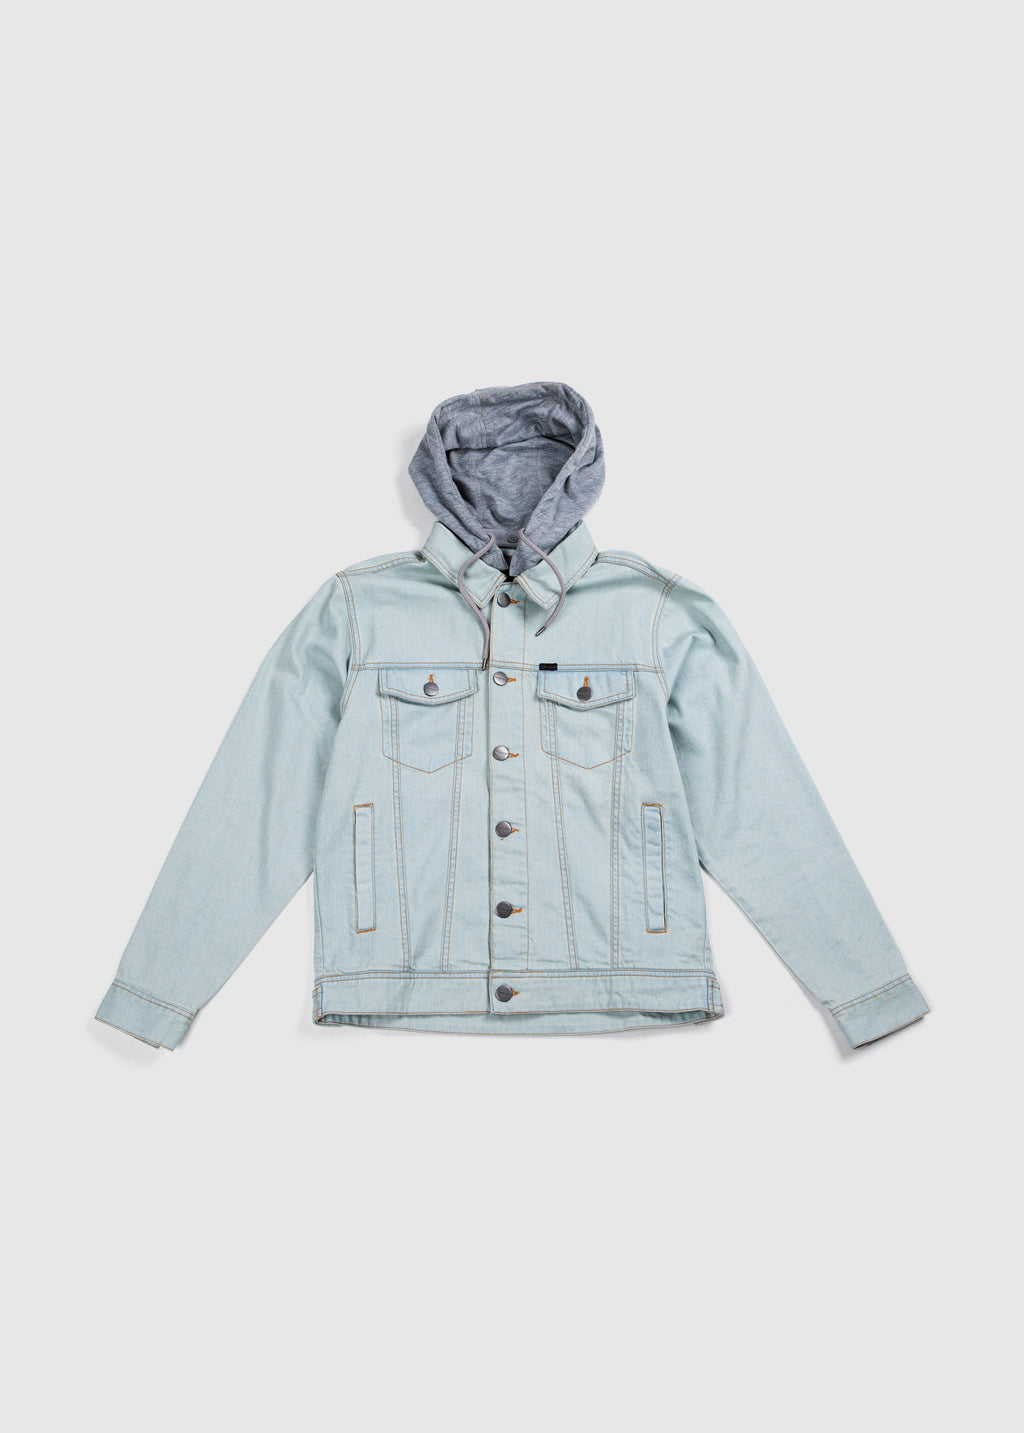 JACKET DENIM LT. BLUE FW